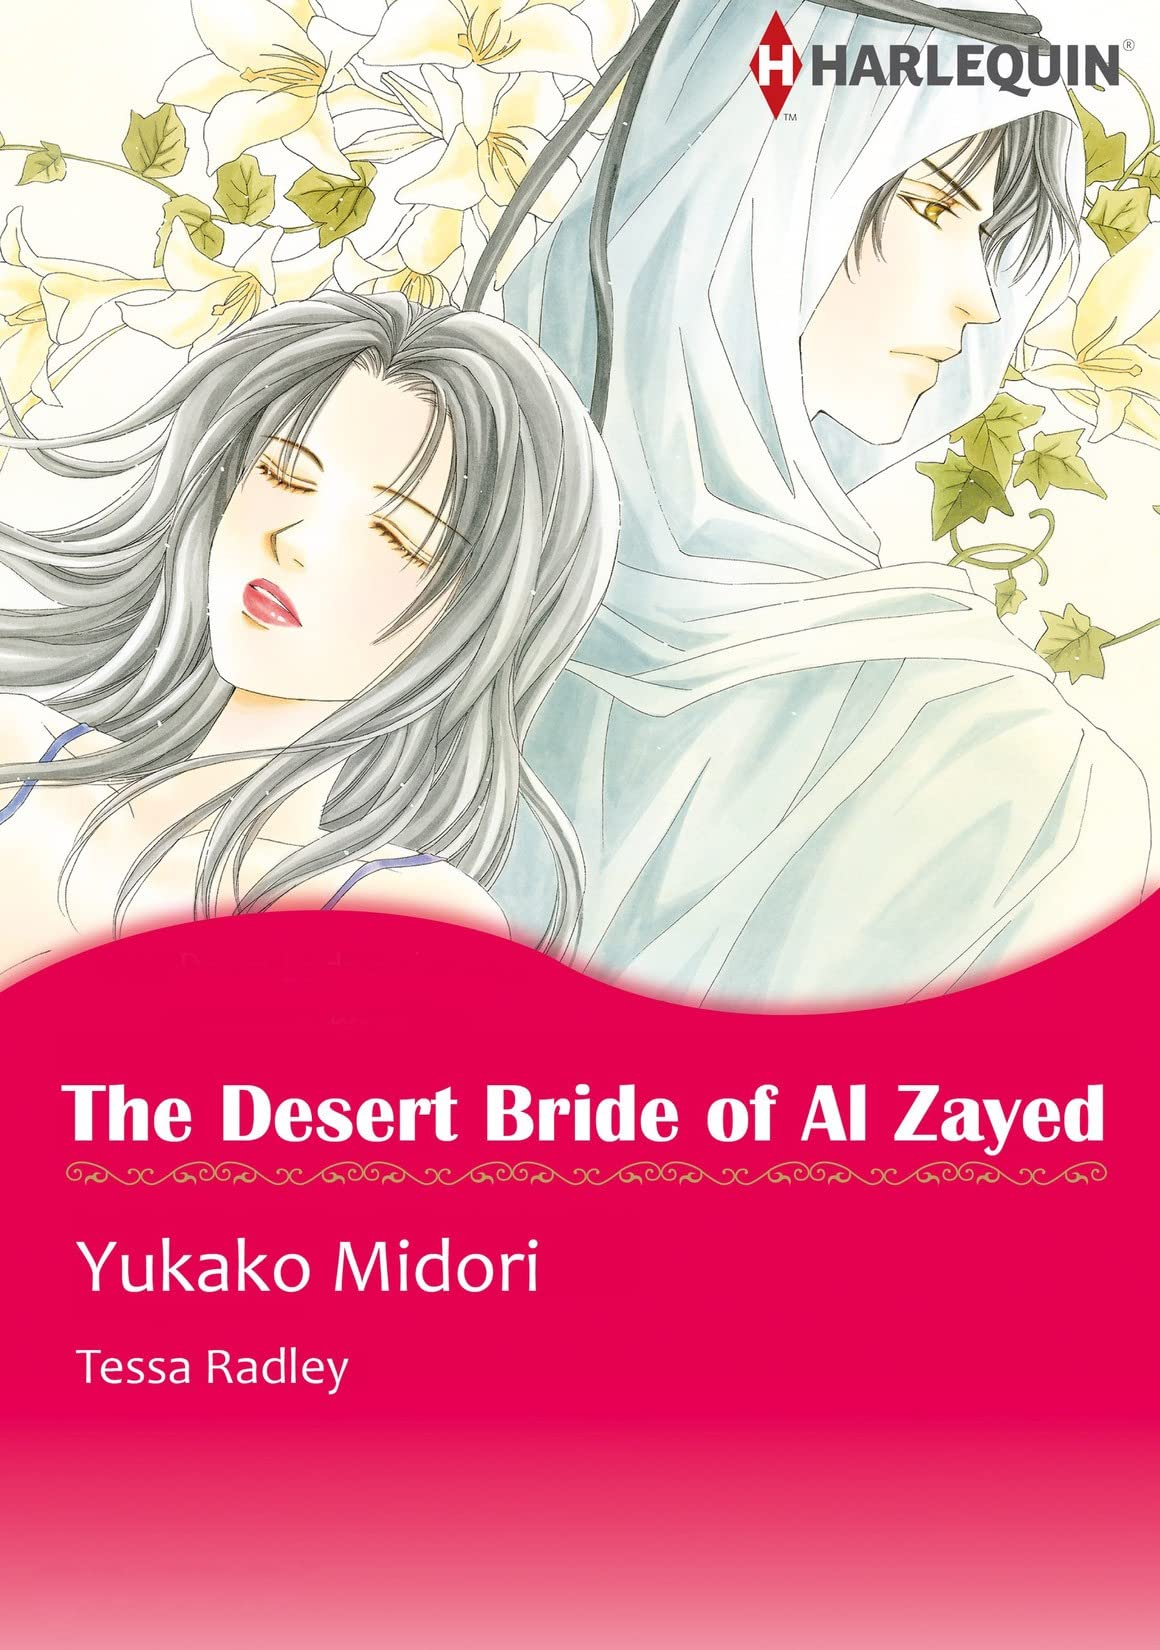 The Desert Bride of Al Zayed